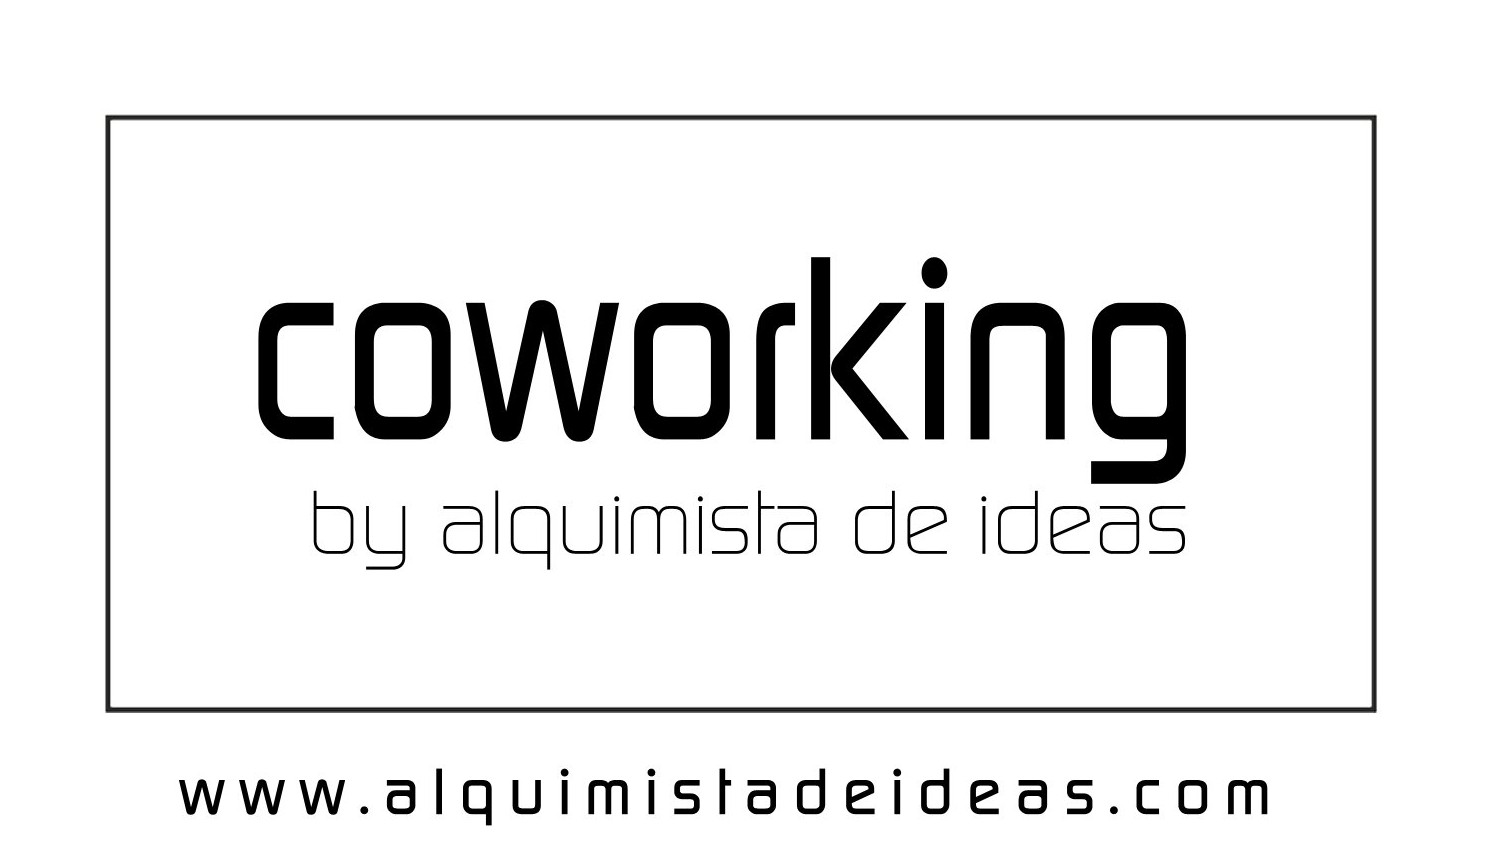 Logotipo coworking by Alquimista de Ideas